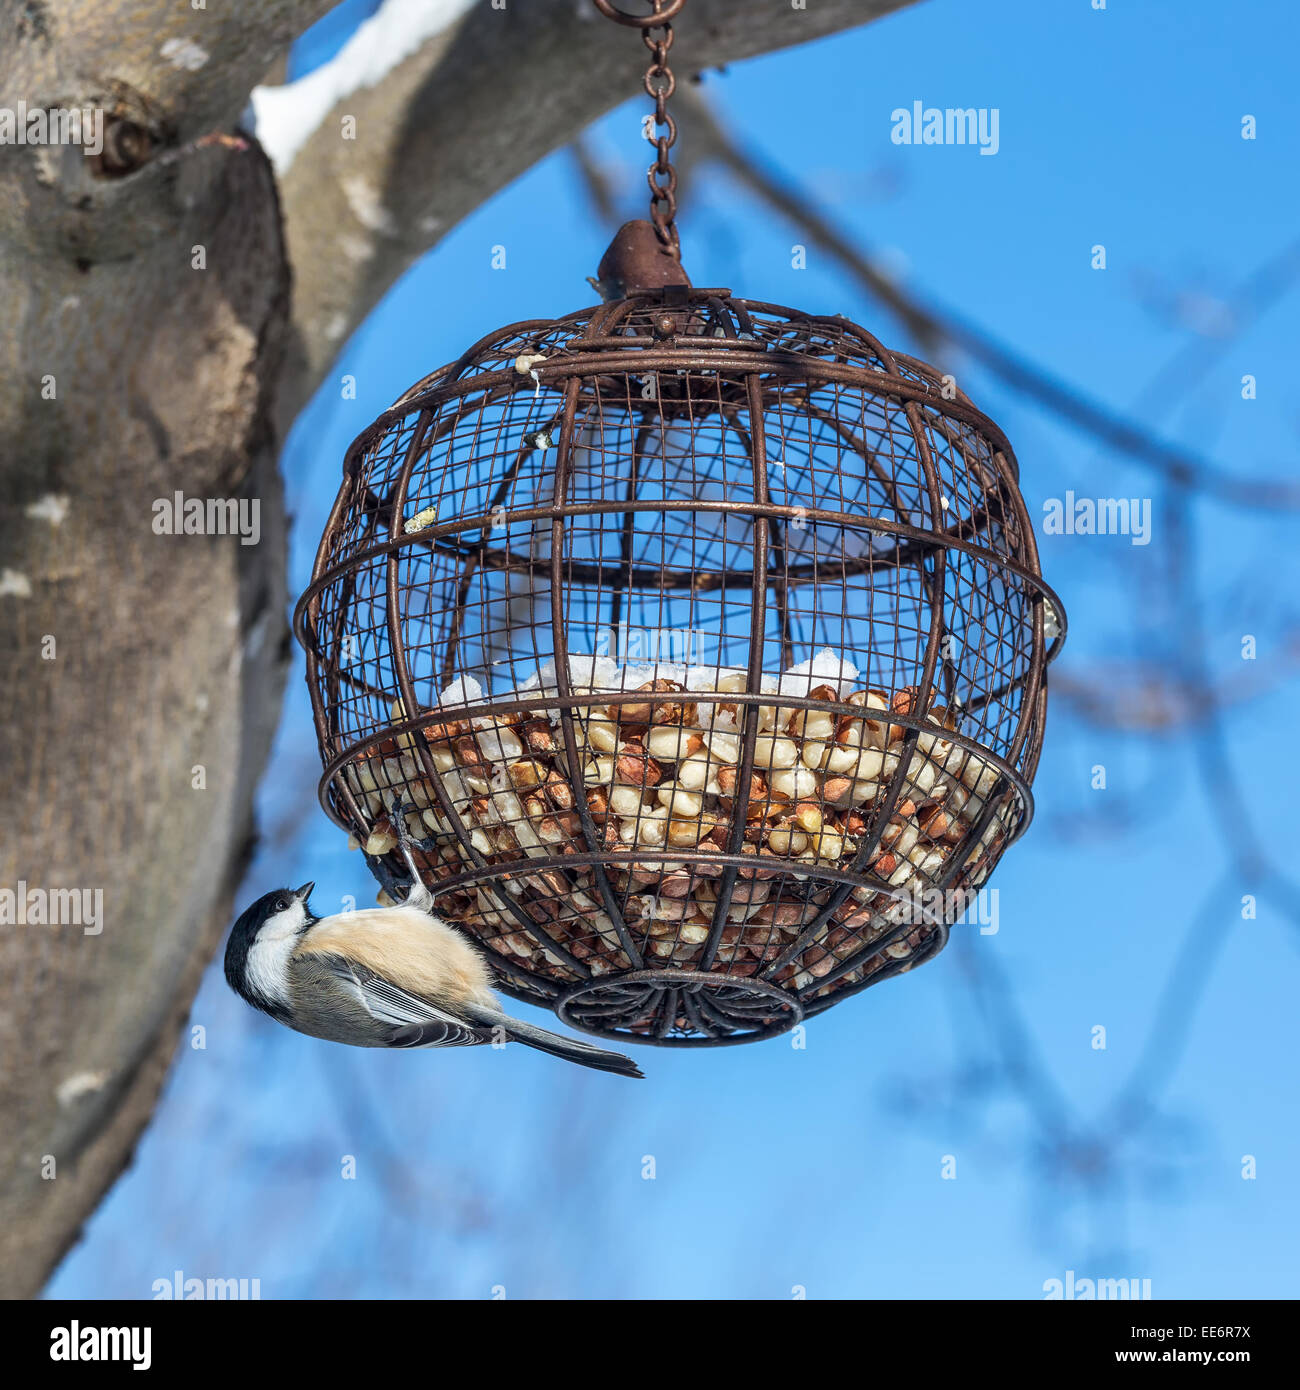 A  black-capped chickadee (Poecile atricapillus) hanging from a round wire bird feeder filled with peanuts. - Stock Image